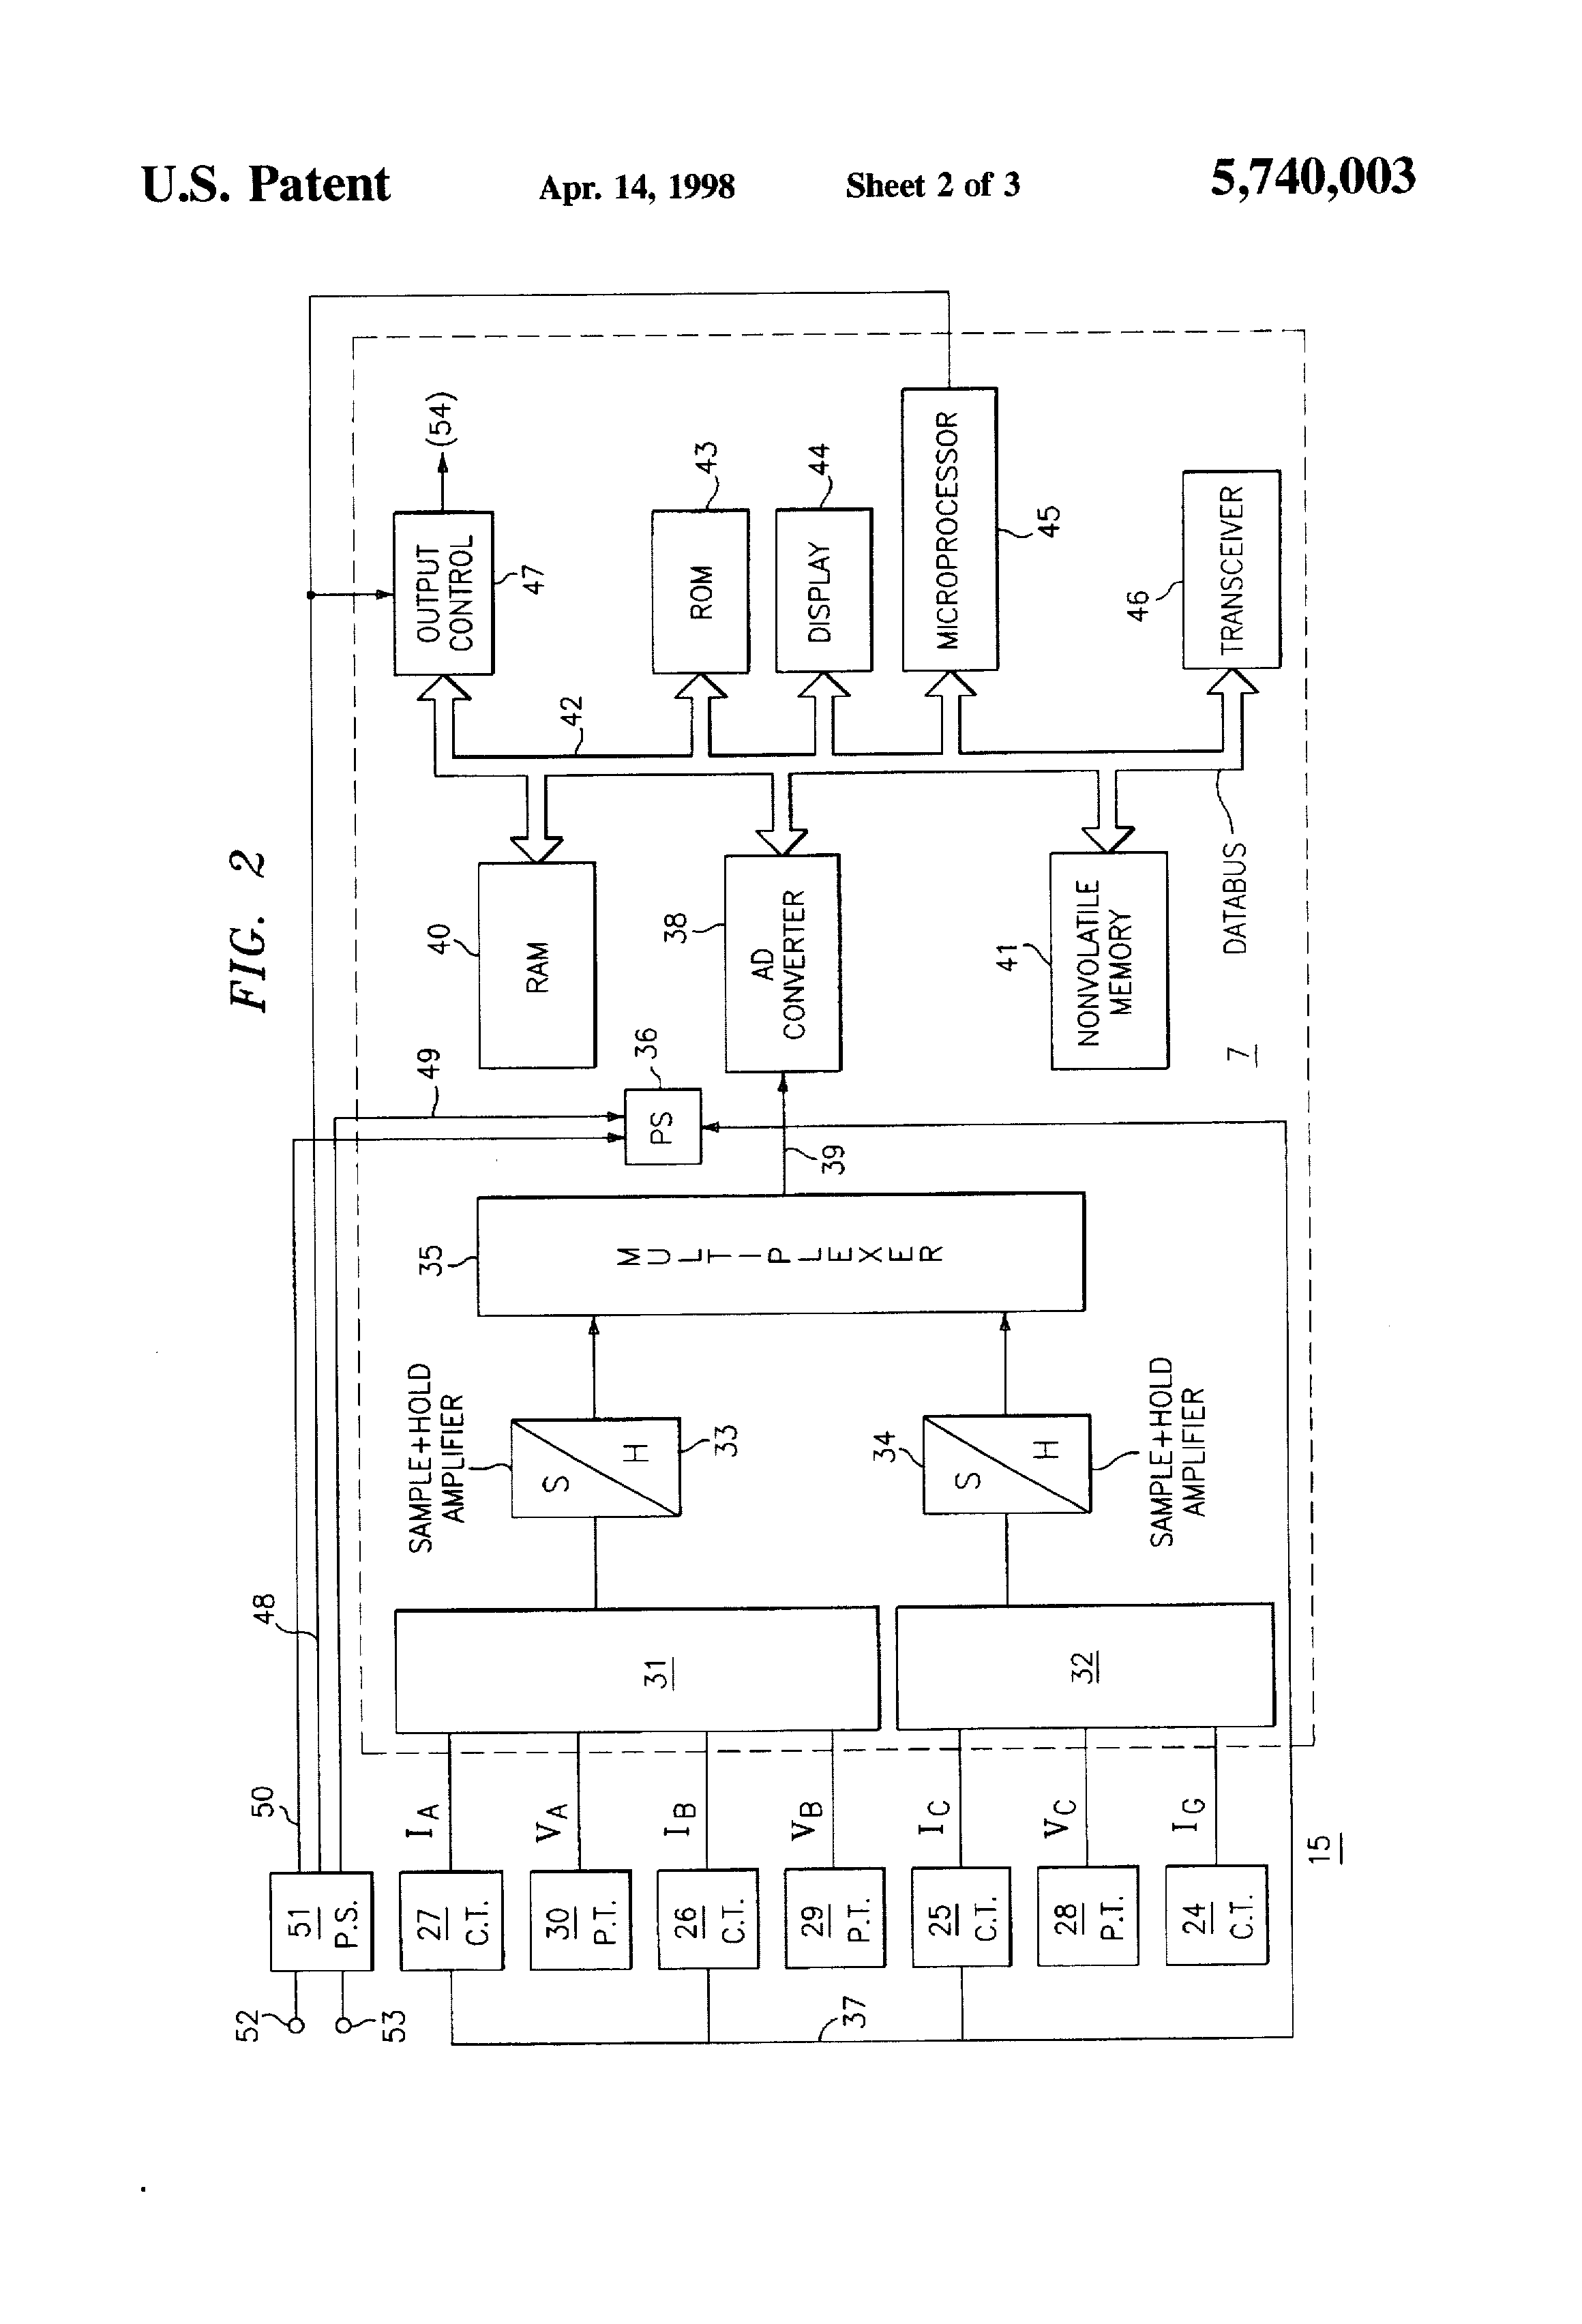 shunt trip circuit breaker diagram